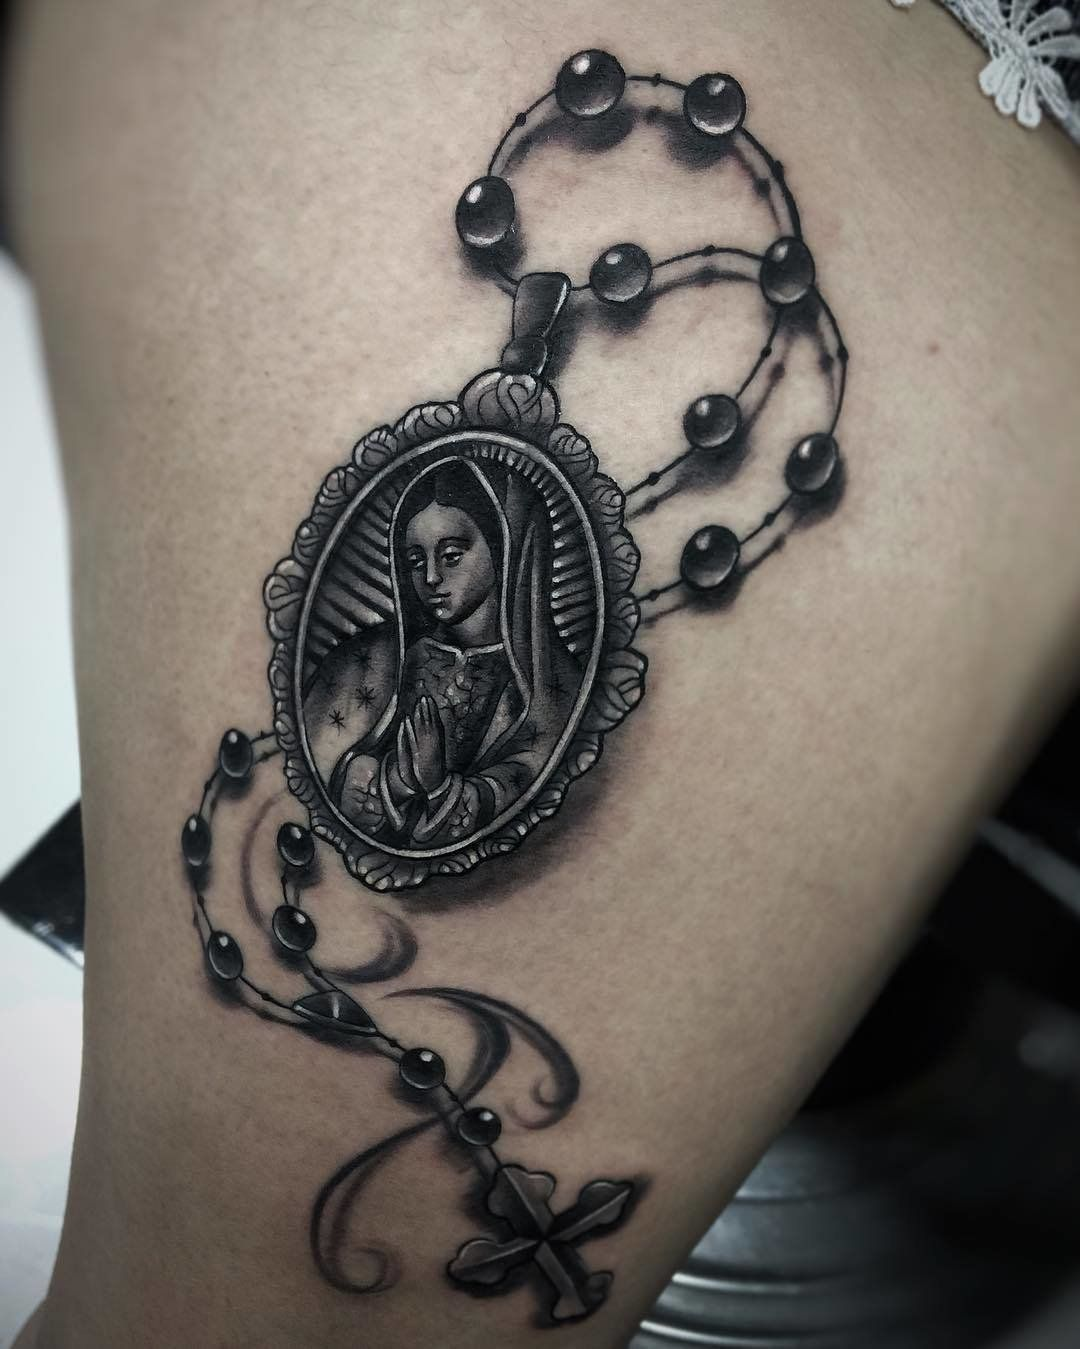 20 Tattoos That Pay Respect To La Virgen De Guadalupe Tats